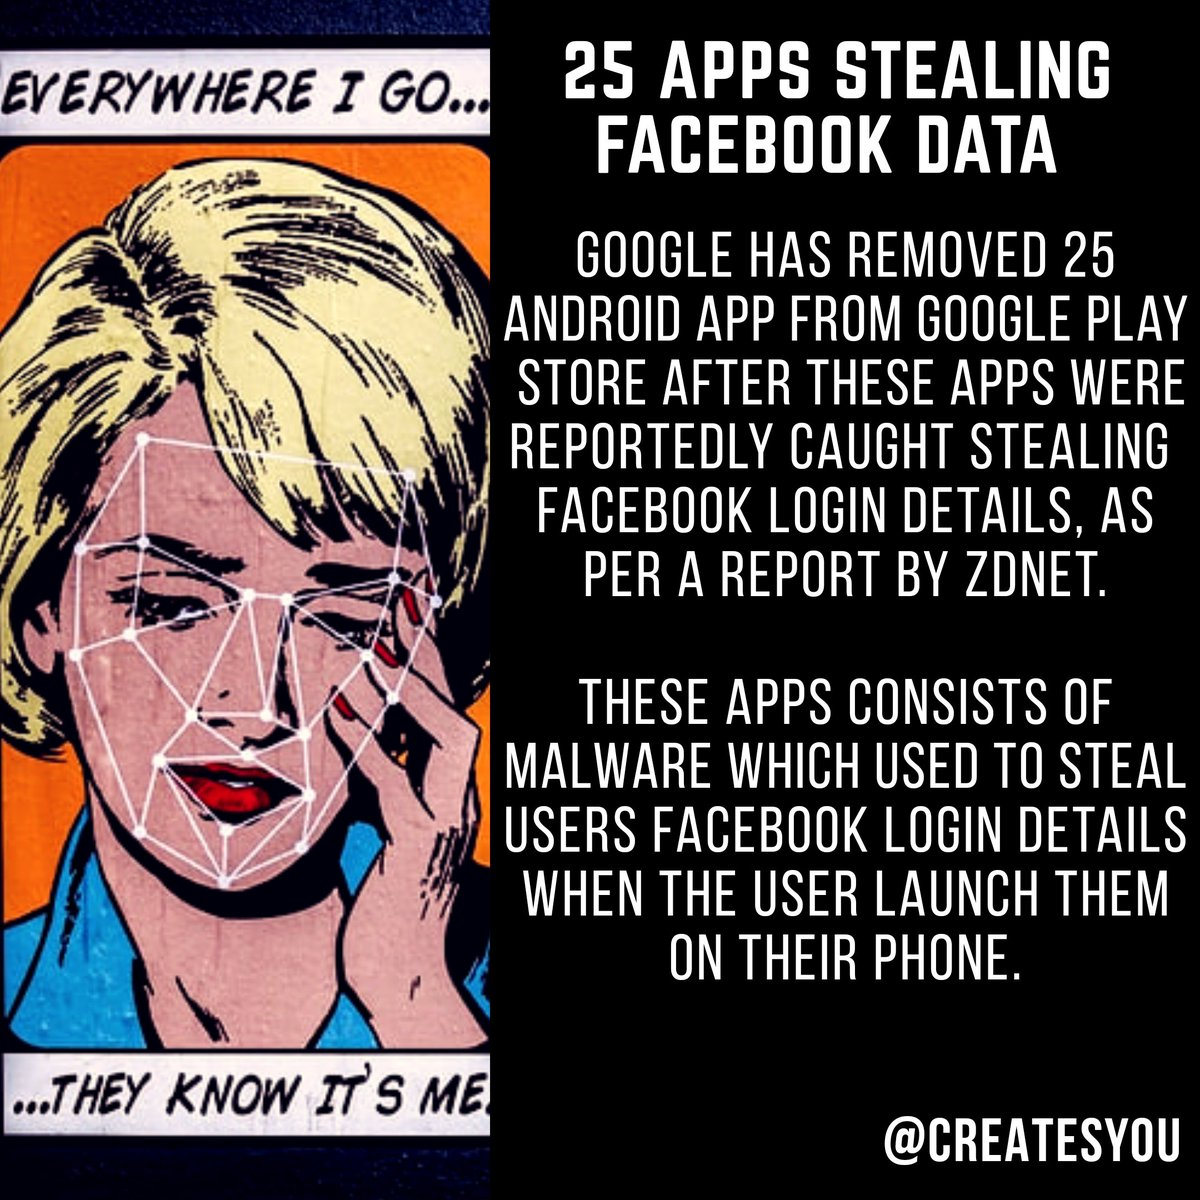 #Google Removed 25 apps from playstore that were stealing your #facebook data. #facebooknews #GooglePlayStore #SocialMediaDay https://t.co/ZJGlDvms0y